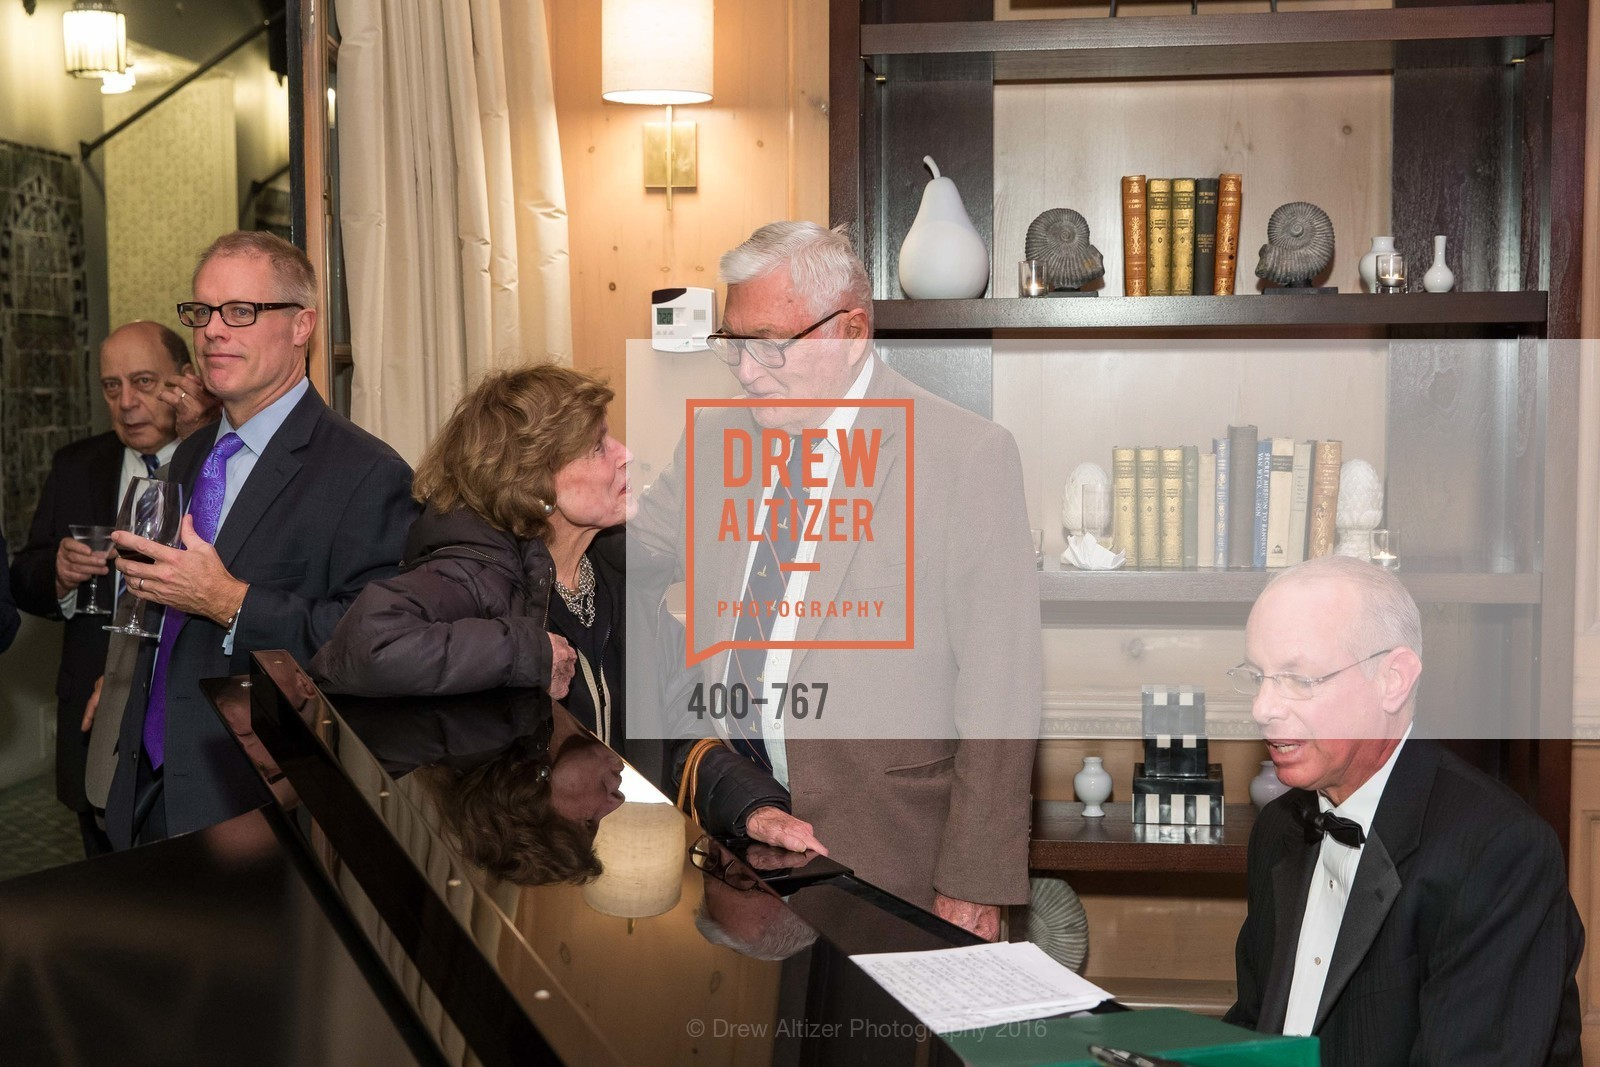 Cathie Johnson, Pitch Johnson, A Special Reception with Tony Bennett, The Fairmont, San Francisco, The Penthouse Suite, January 26th, 2016,Drew Altizer, Drew Altizer Photography, full-service event agency, private events, San Francisco photographer, photographer California